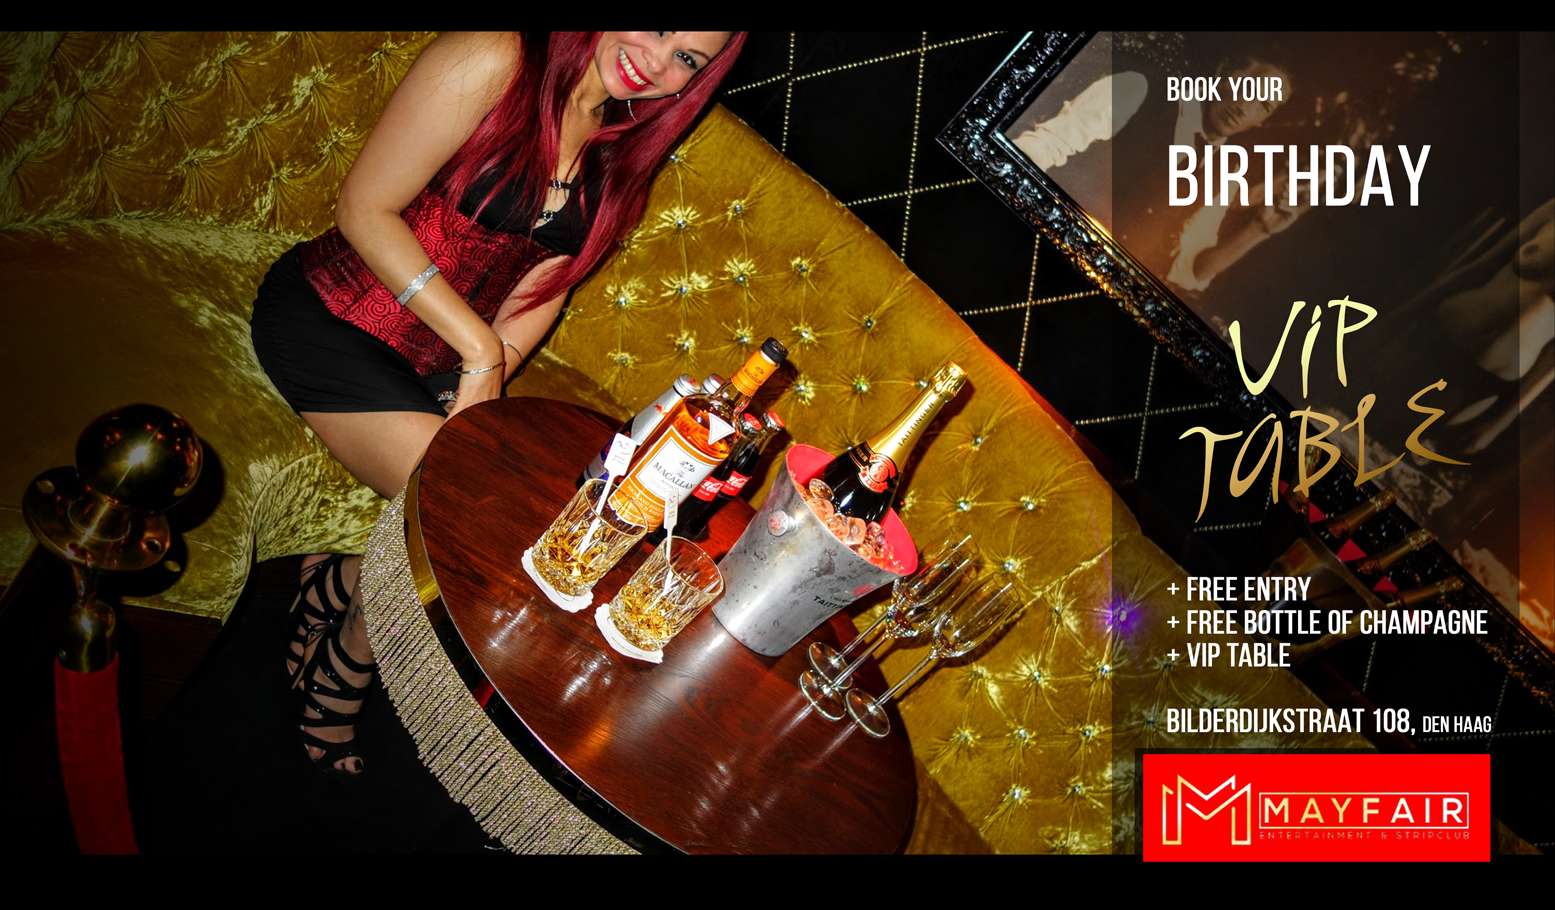 VIP Table Birthday Mayfair Stripclub & Gentlemans Club Brothel